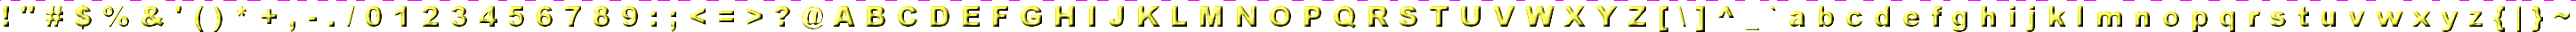 fonts/24P_Arial_Metallic_Yellow.png